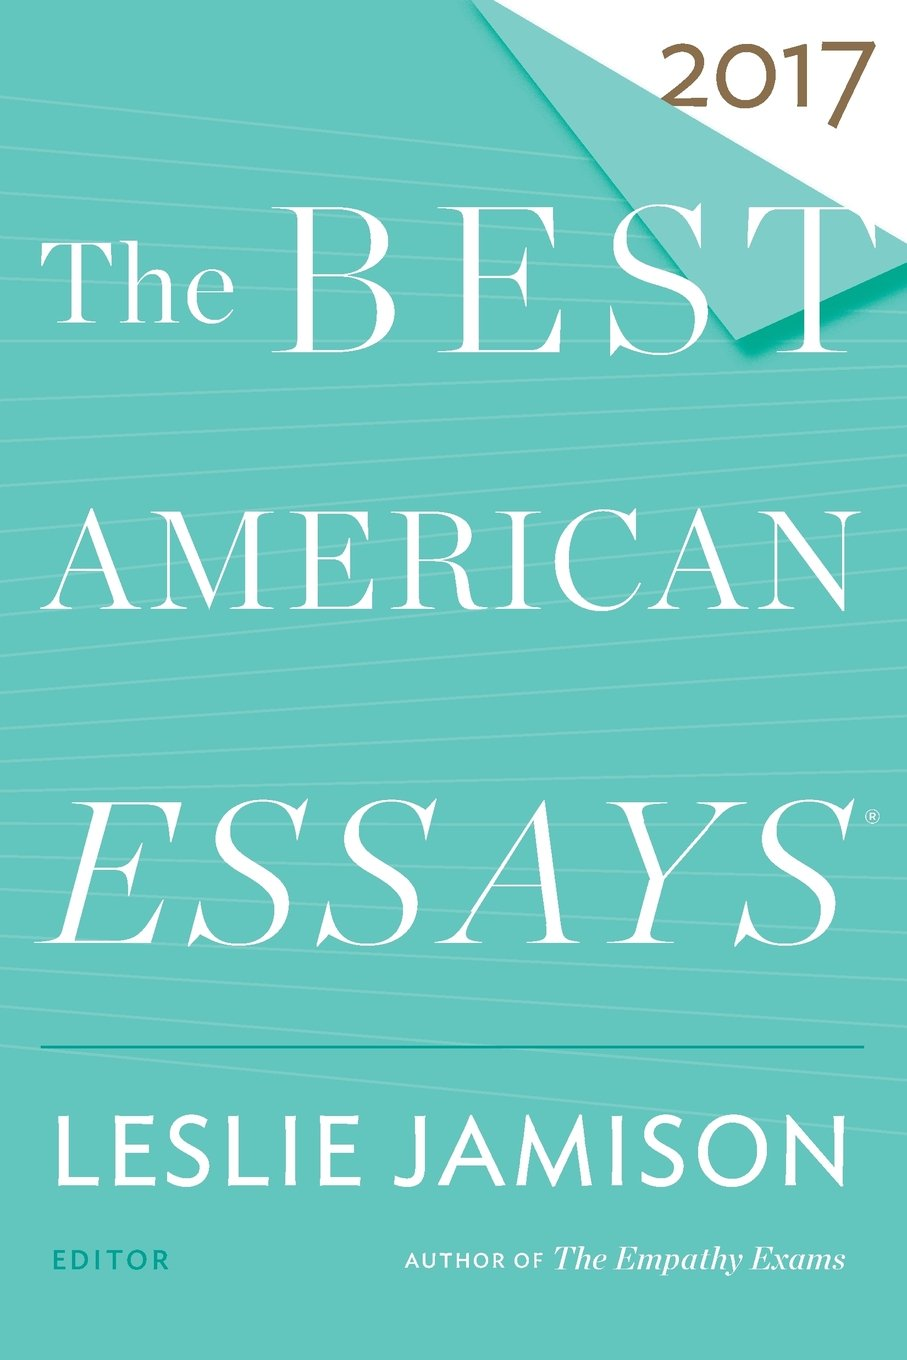 001 61tzl Nruvl Essay Example Best American Striking Essays 2017 Table Of Contents The Century Pdf Full